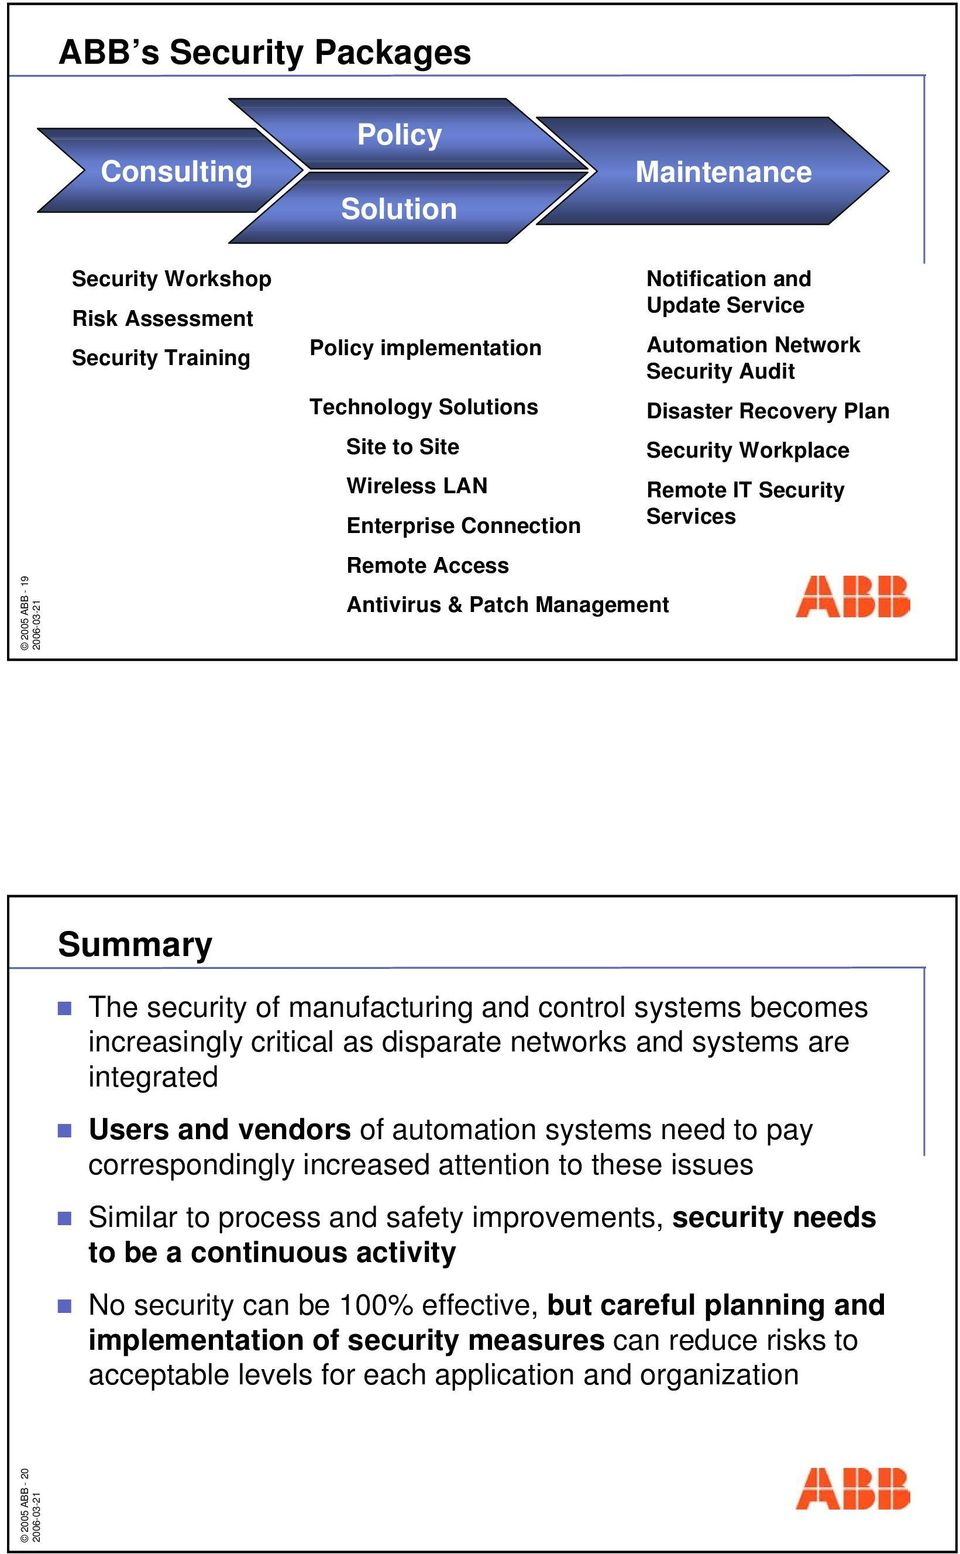 Management Summary The security of manufacturing and control systems becomes increasingly critical as disparate networks and systems are integrated Users and vendors of automation systems need to pay